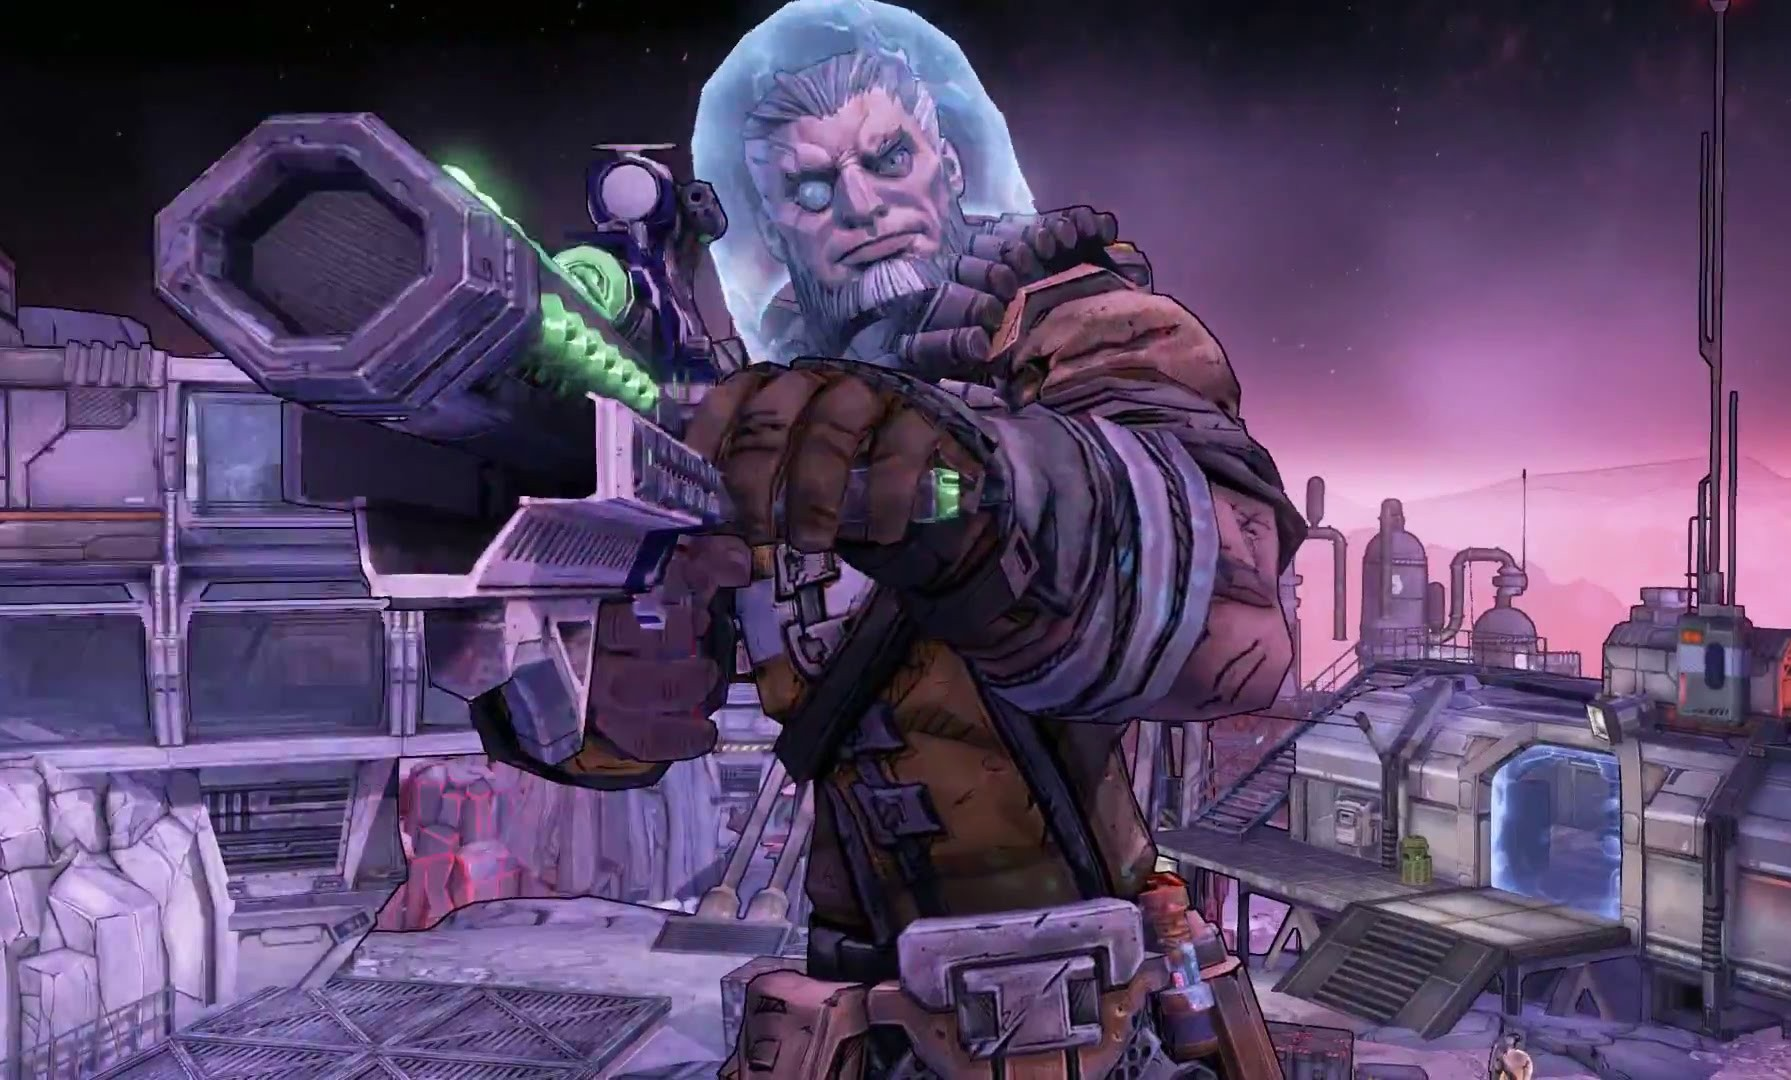 VÍDEO DE LANZAMIENTO DE BORDERLANDS: THE PRE-SEQUEL